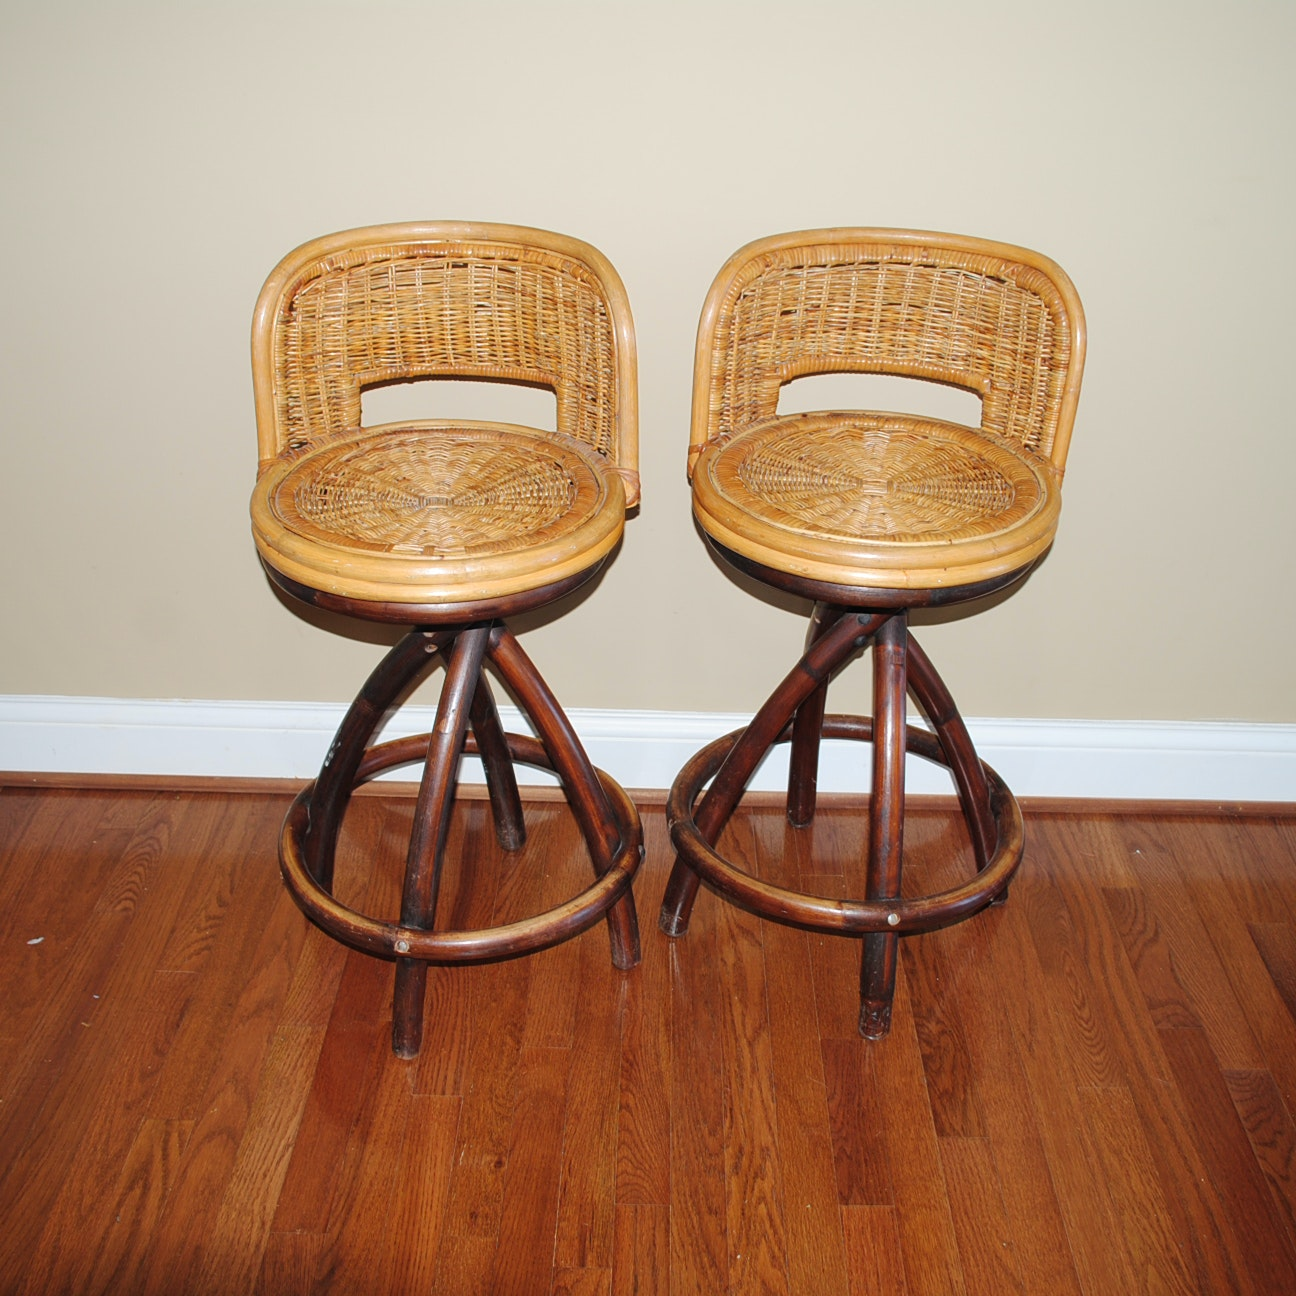 Pair of Wicker and Rattan Counter Stools